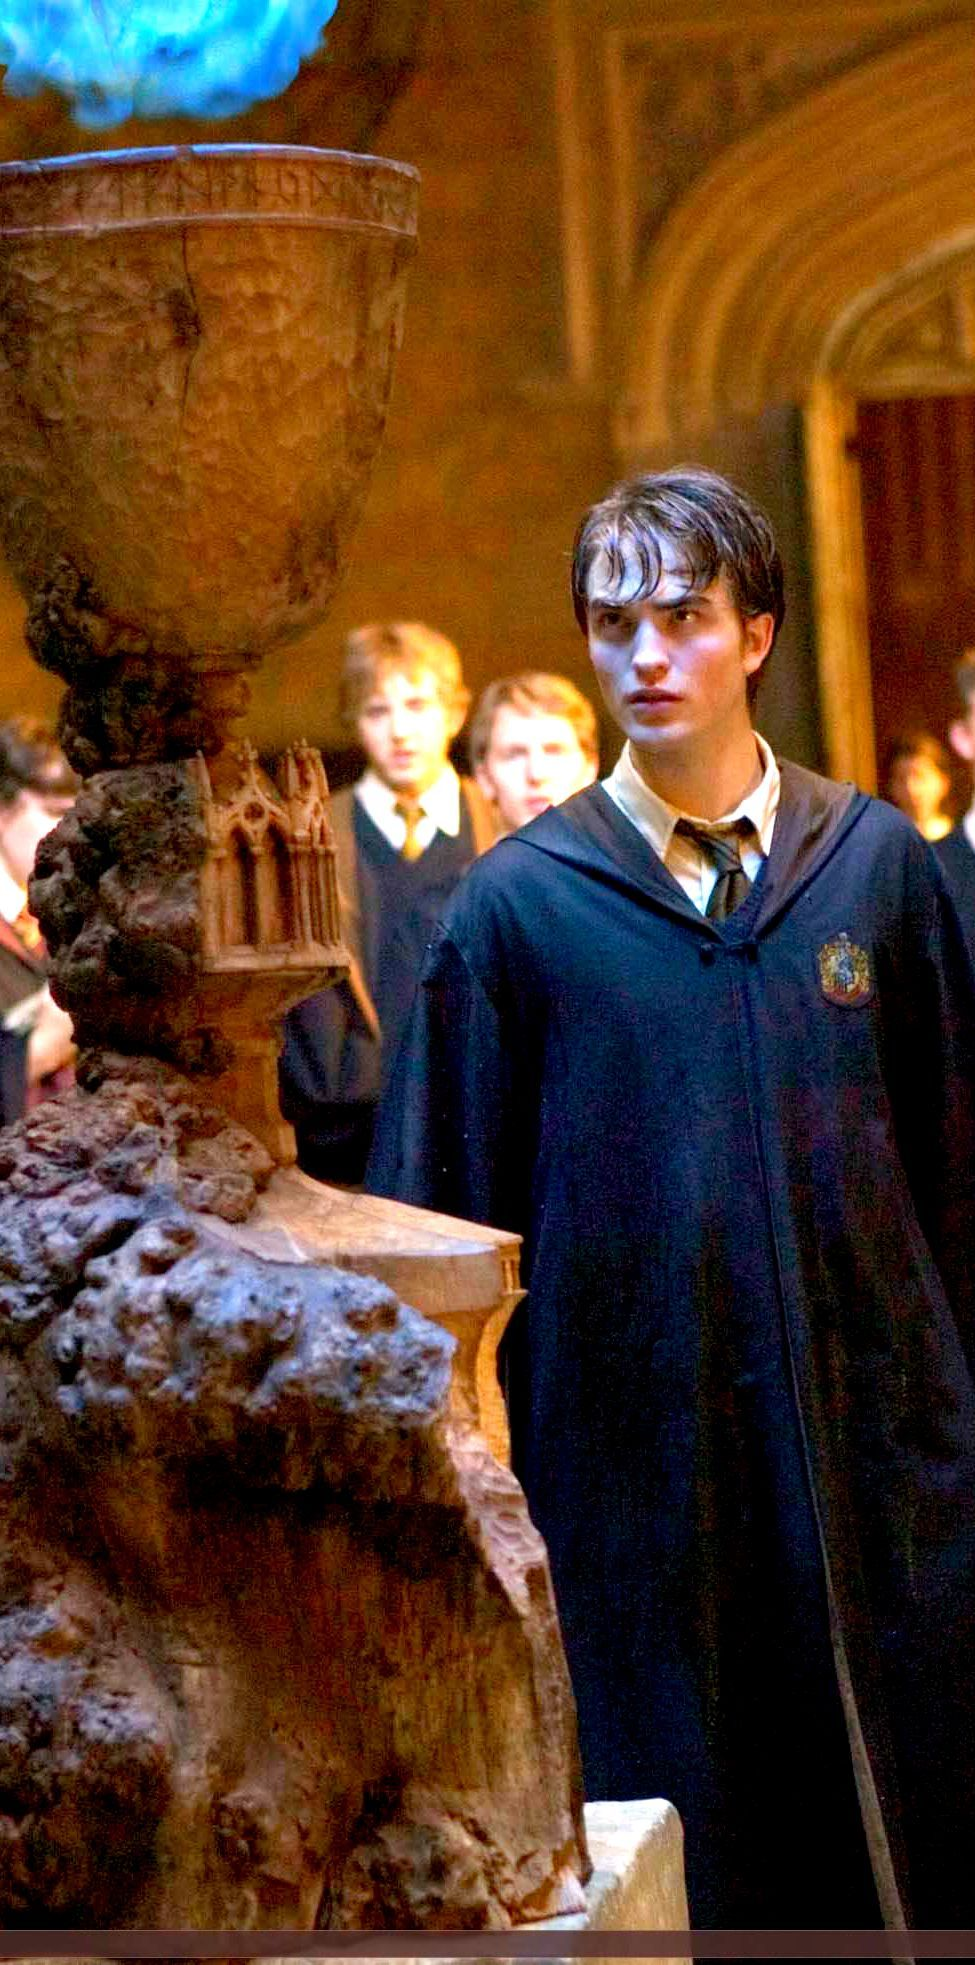 Harry Potter - Goblet of Fire #Cedric Diggory #Robert Pattinson